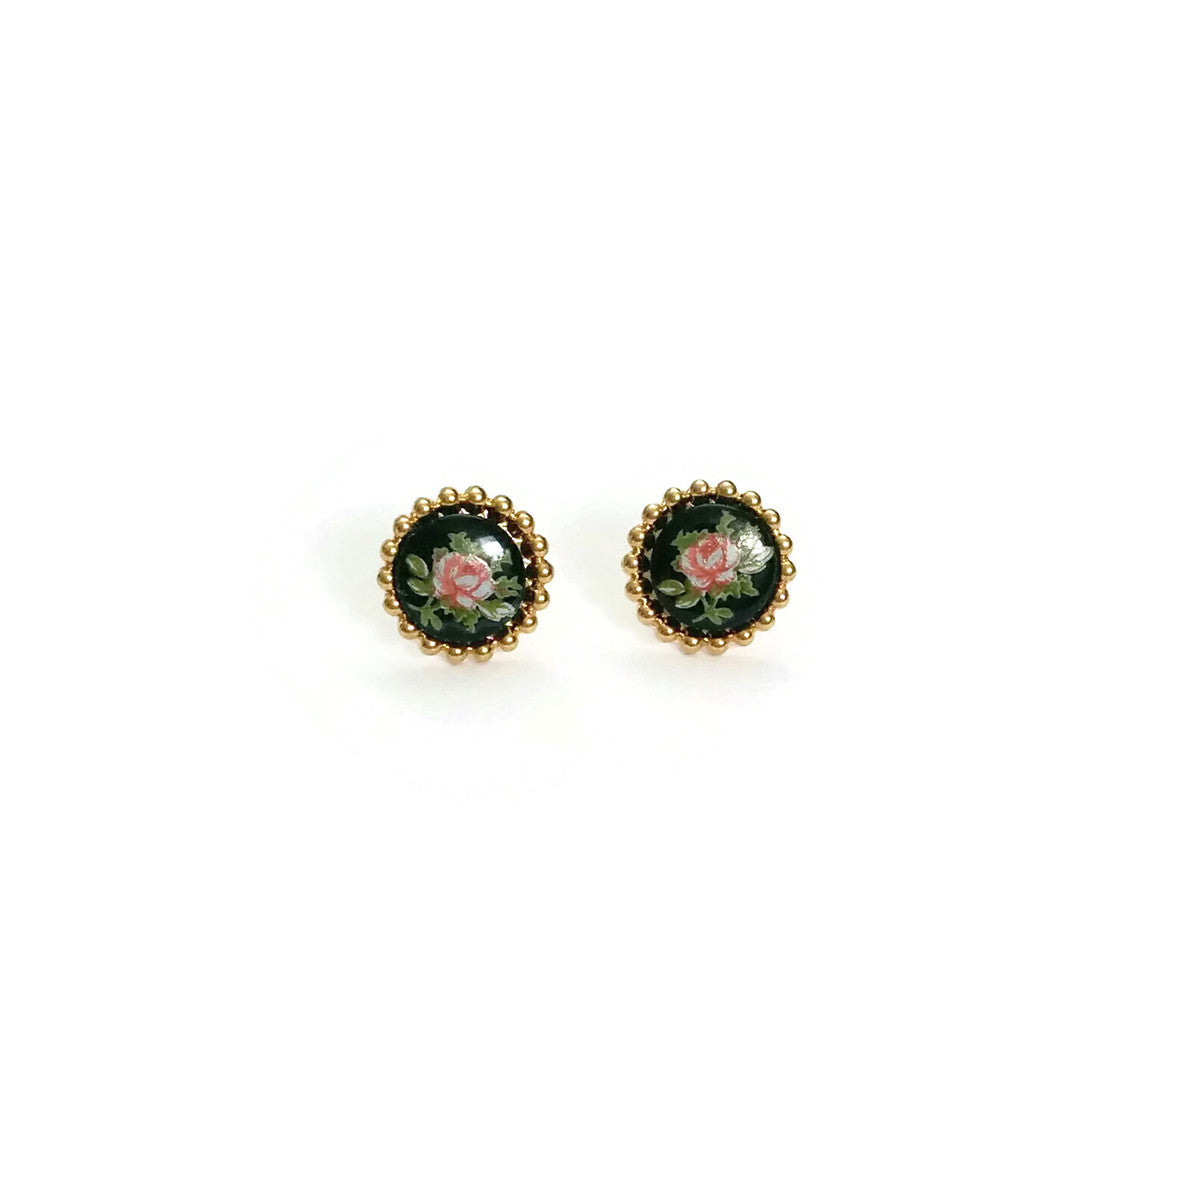 Rose Ear Posts (SD1101) - Sandrine Devost Jewelry